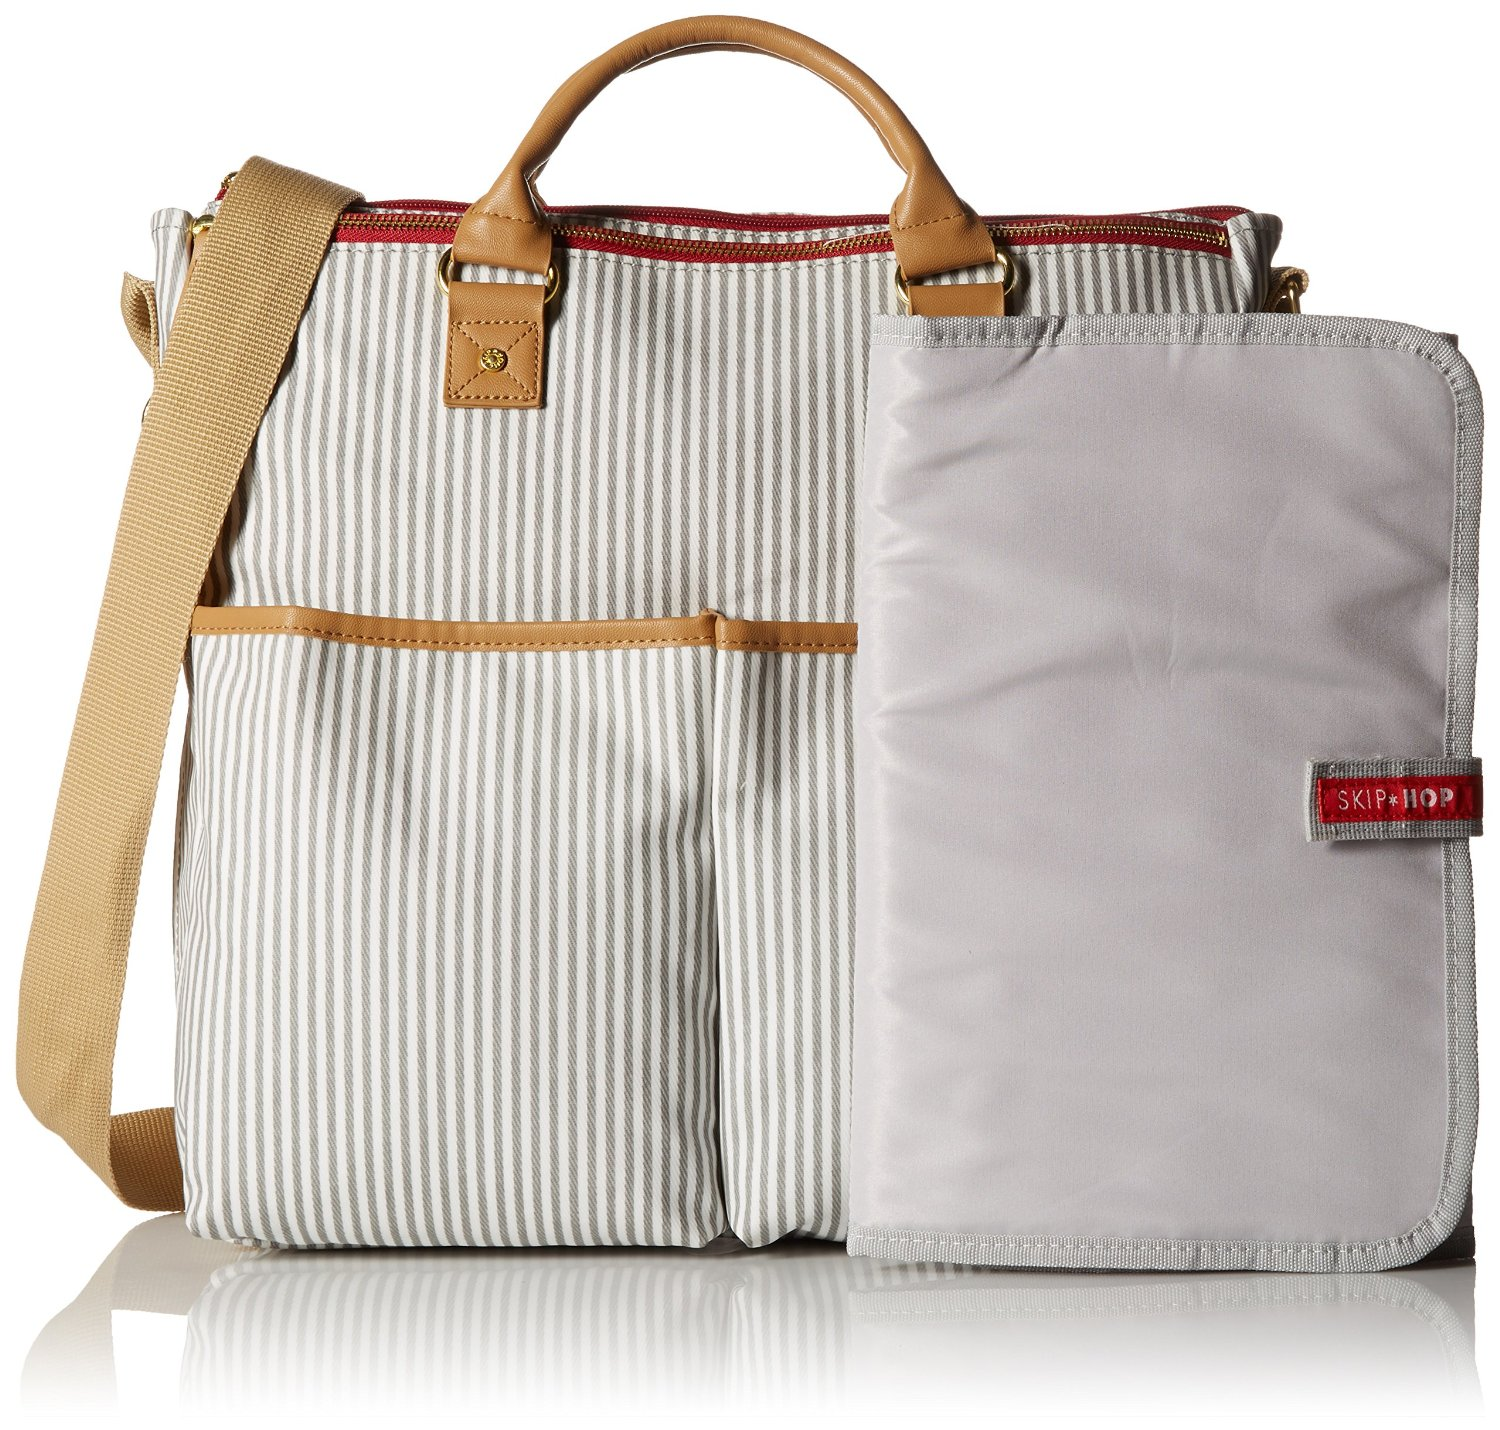 HAVE YOU PACKED YOUR PREGNANCY HOSPITAL BAG YET?